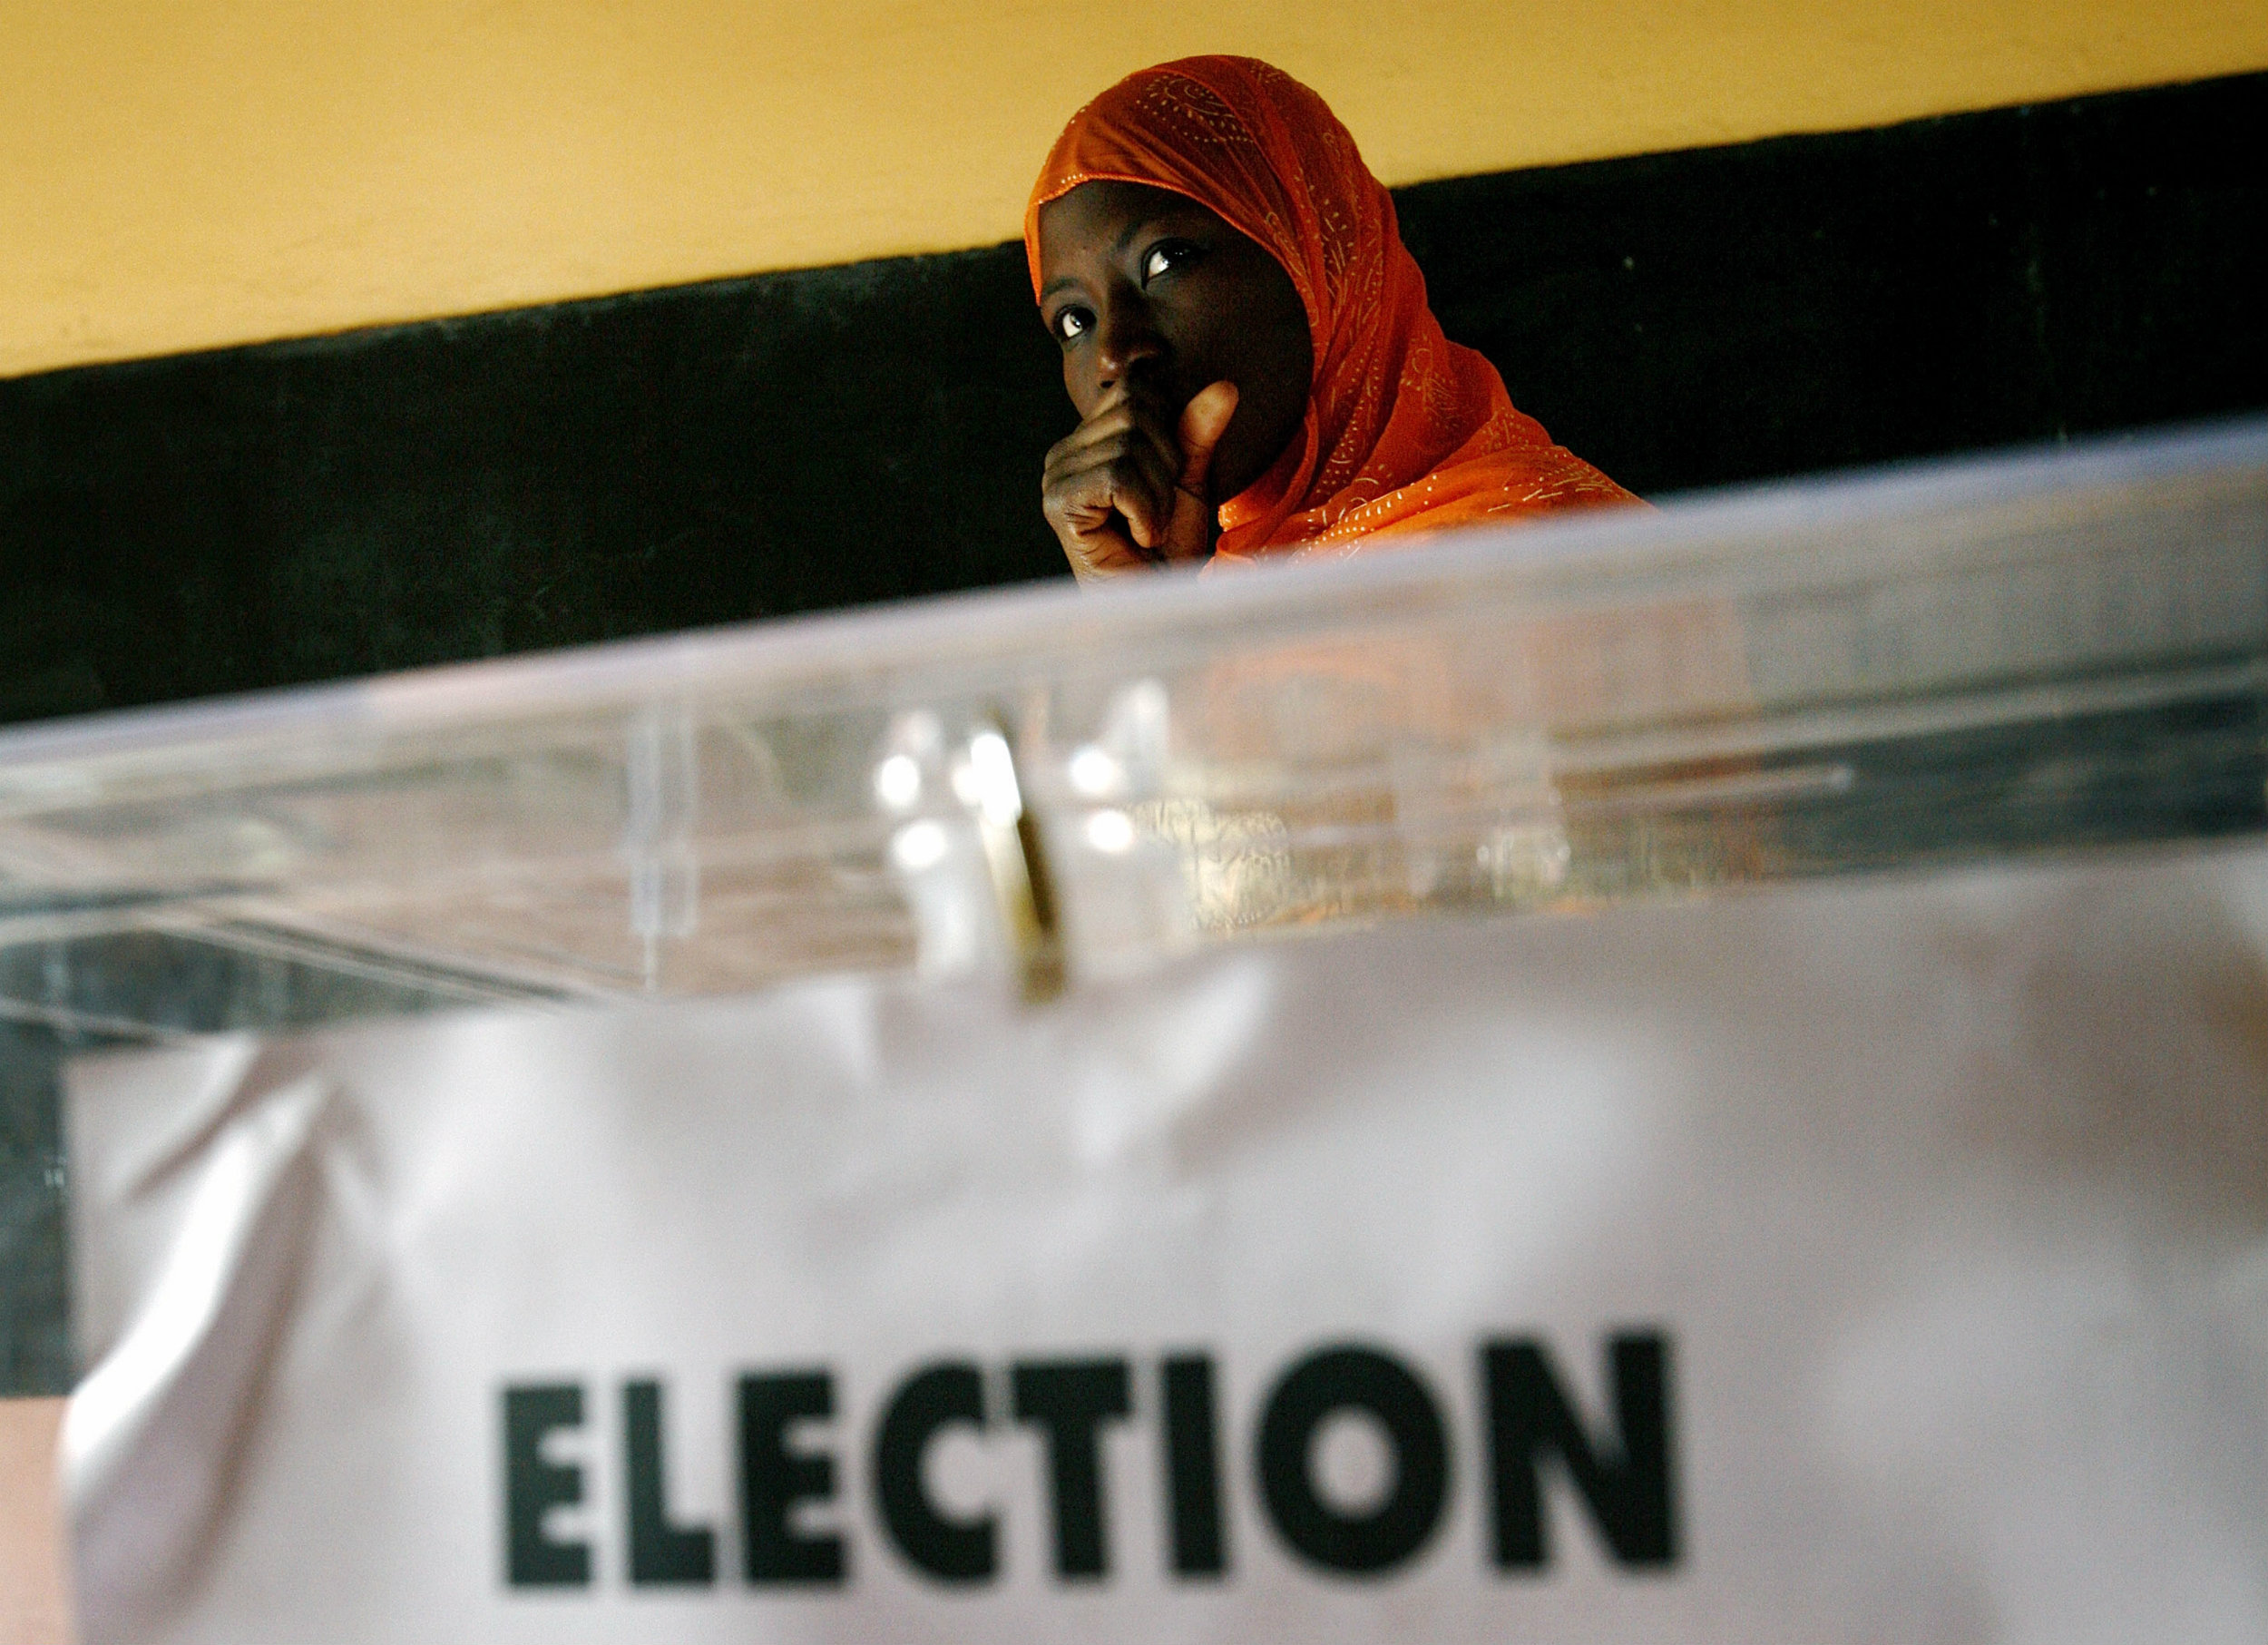 A Senegalese woman waits to cast her ballot at a voting station during presidential elections in the capital Dakar, February 25 2007. Senegalese began voting on Sunday in an election which President Abdoulaye Wade hopes will extend his rule for five more years in one of Africa's most stable democracies.